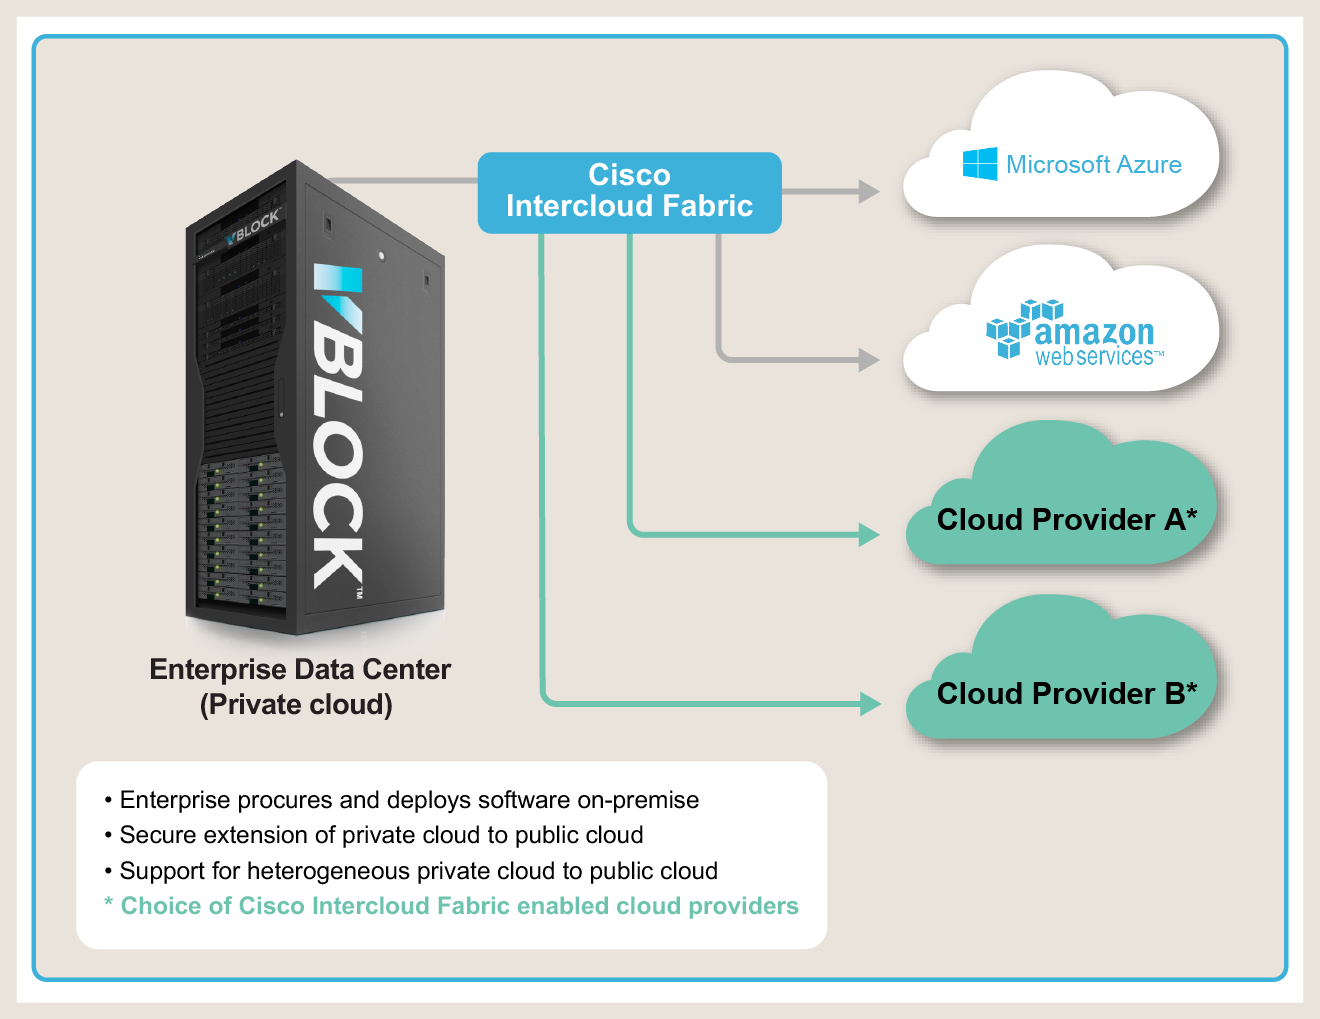 Vblock Systems with Cisco Intercloud Fabric Vblock Systems are pre-engineered and validated units that streamline IT infrastructure acquisition, deployment, and operations.